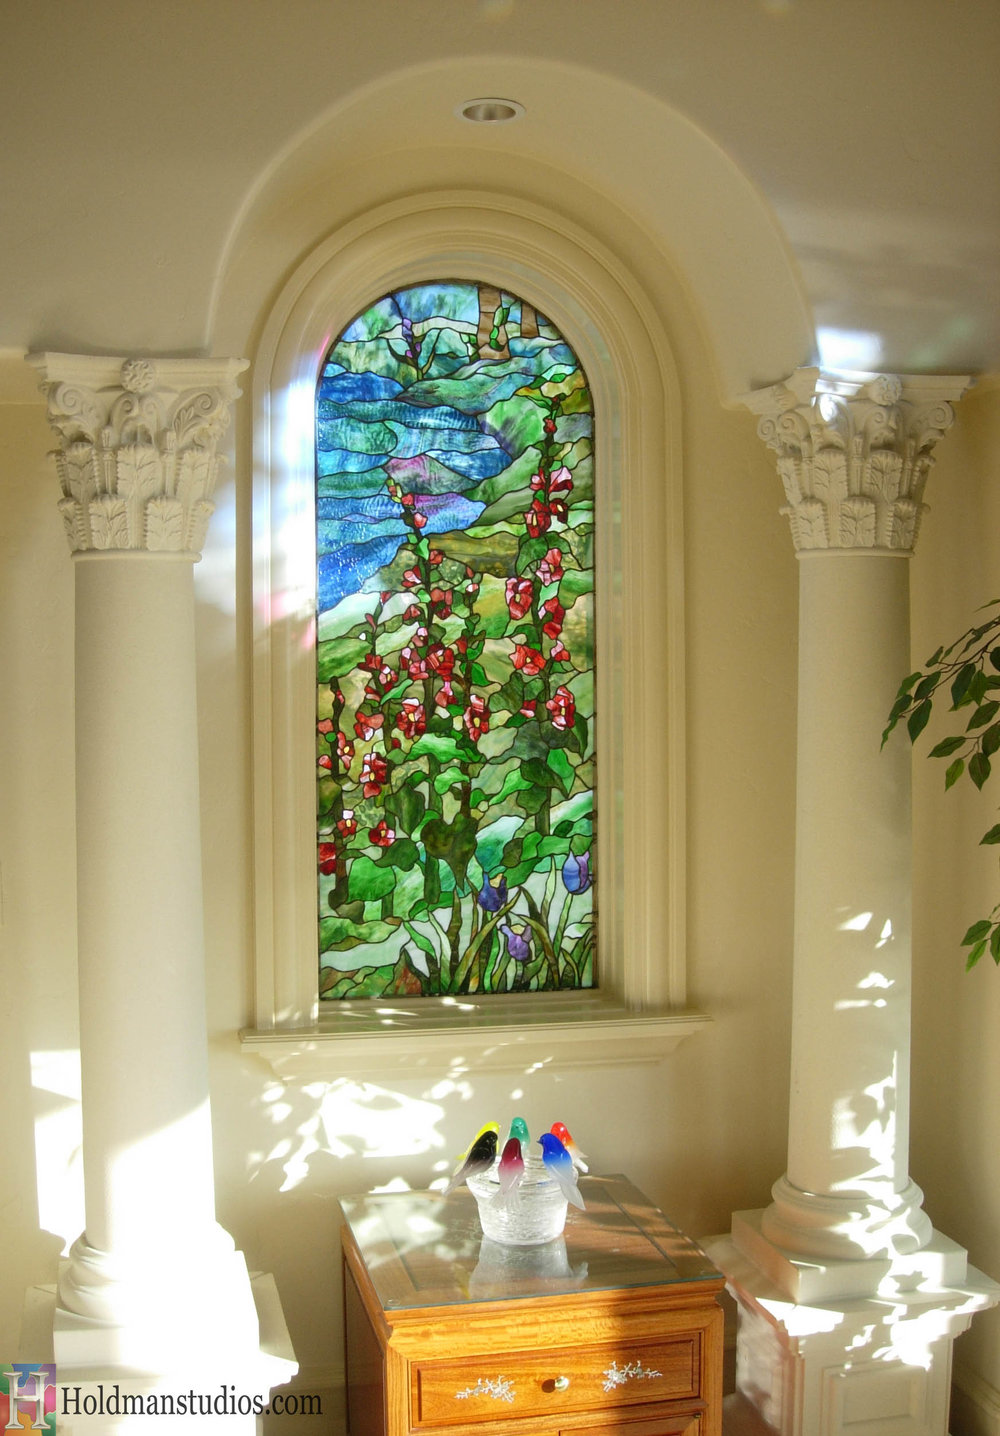 Stained Glass side Bedroom window with trees, river water, flowers, grass, mountains, and clouds in the sky. Created by artists under the direction of Tom Holdman at Holdman Studios.